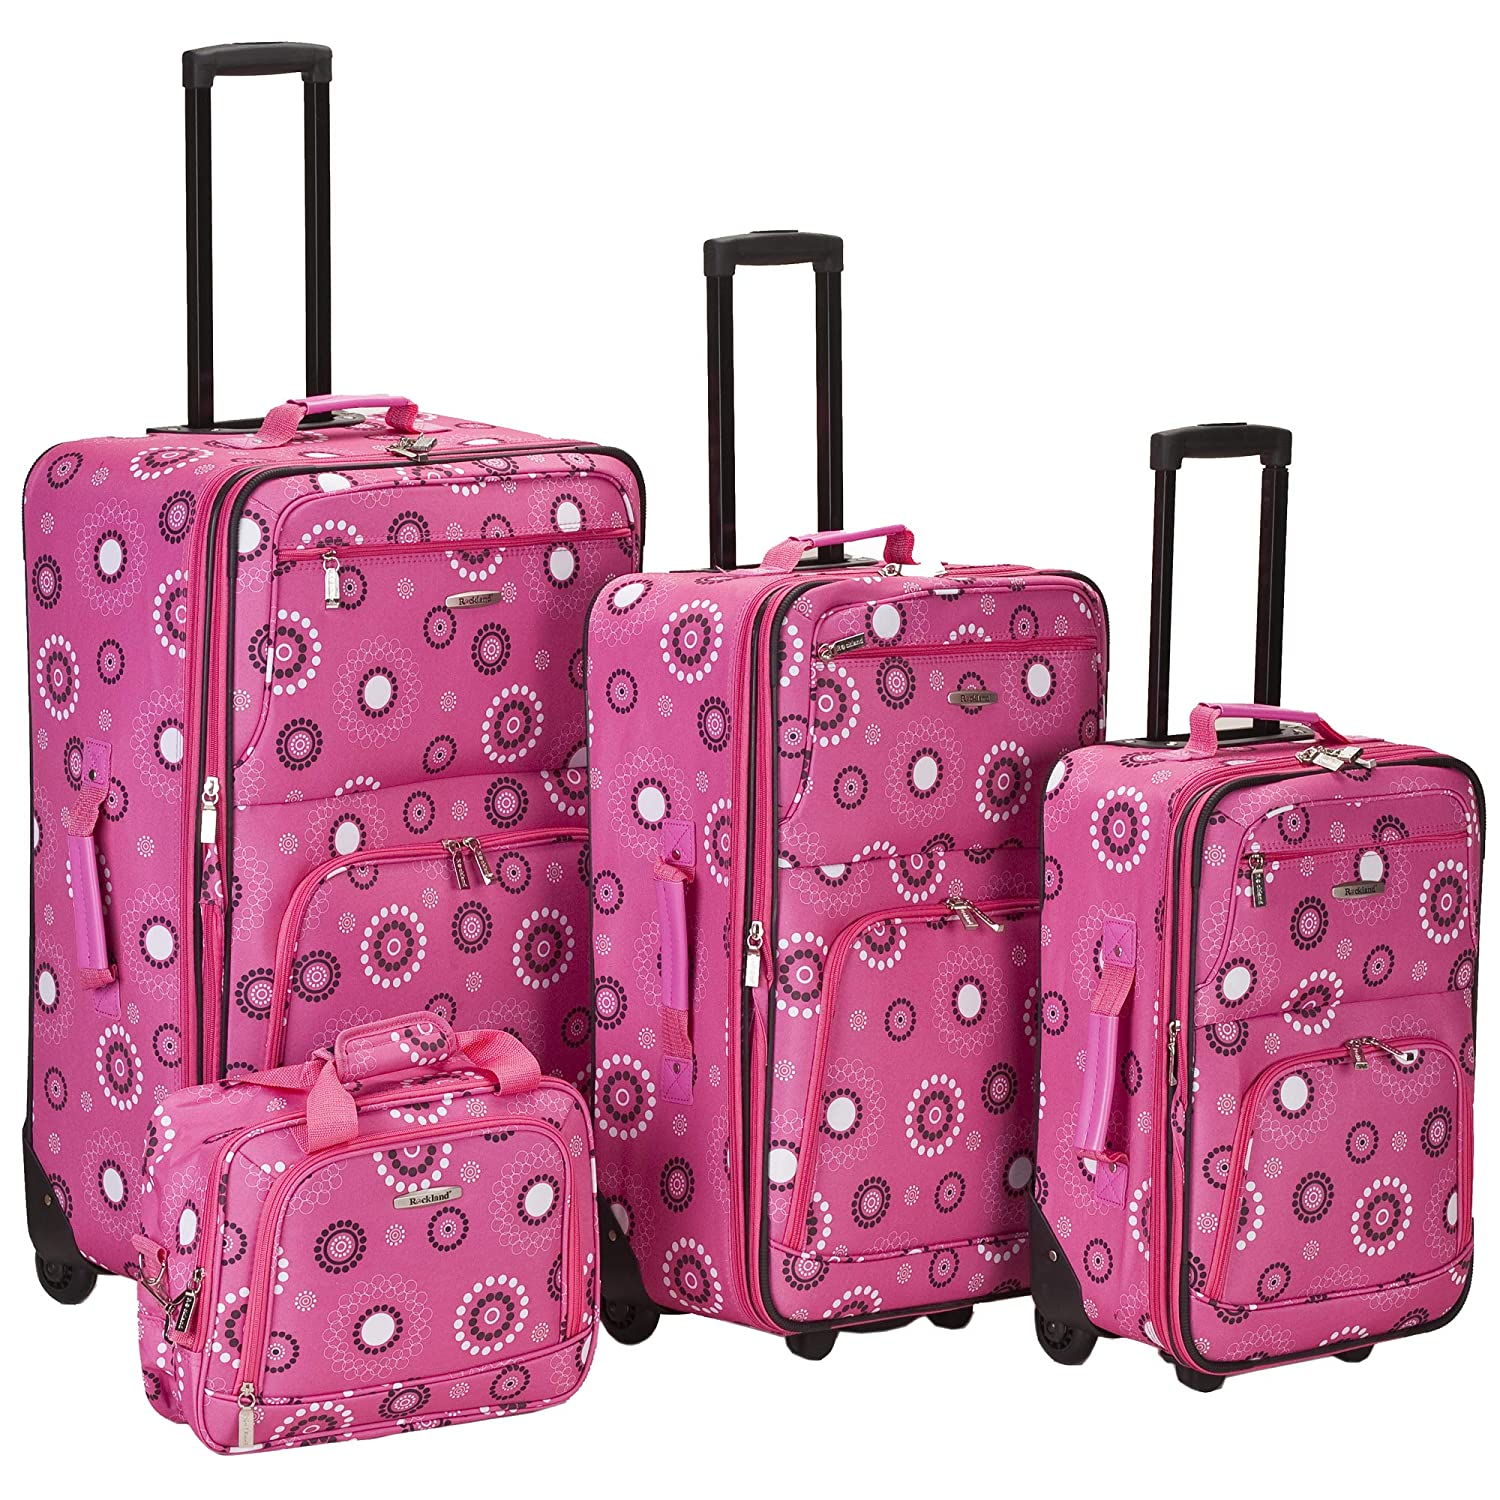 One Size Fox Luggage F108-PINKBANDANA Pink Bandana Rockland Luggage Brown Leaf 4 Piece Luggage Set